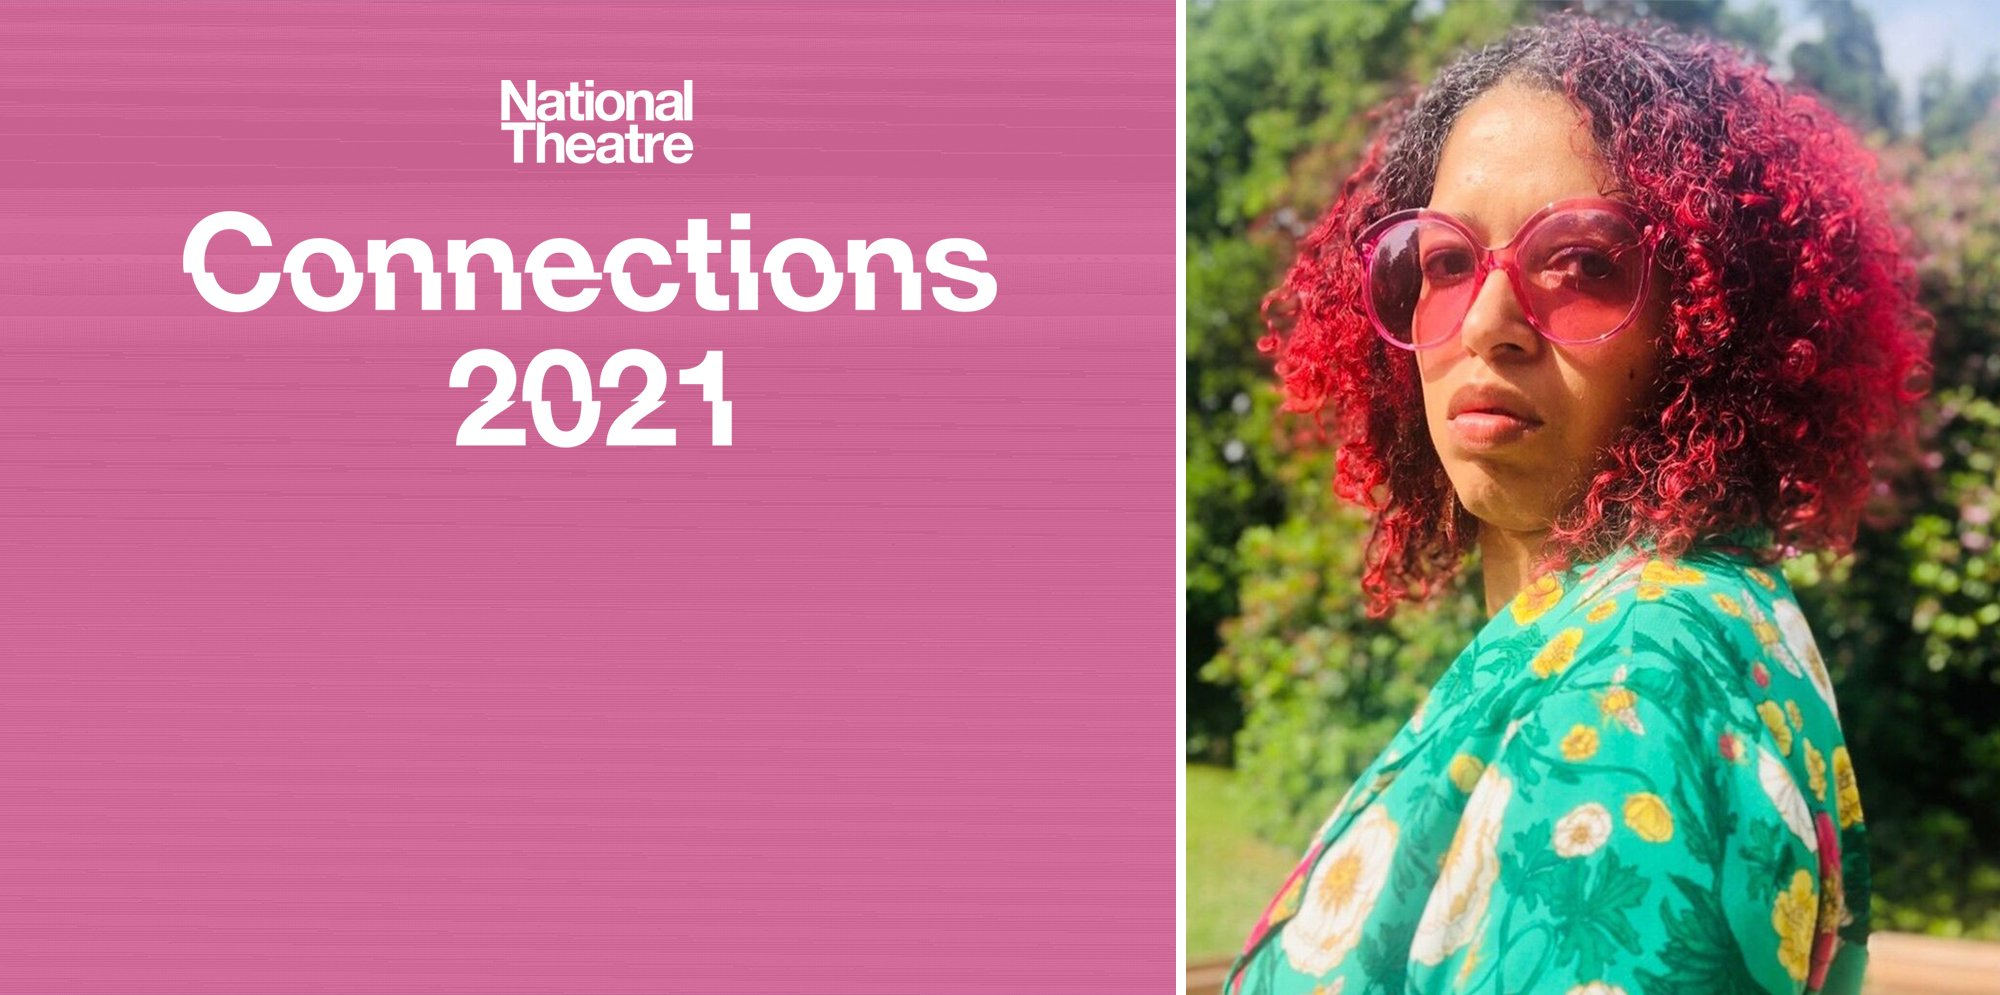 On the left side of the image, a white NT Connections logo is on a pink background. On the right is a picture of Paula Varjack, a mixed race woman wearing large sunglasses and with curly red hair. She wears a bright patterned top and is pictured outdoors.